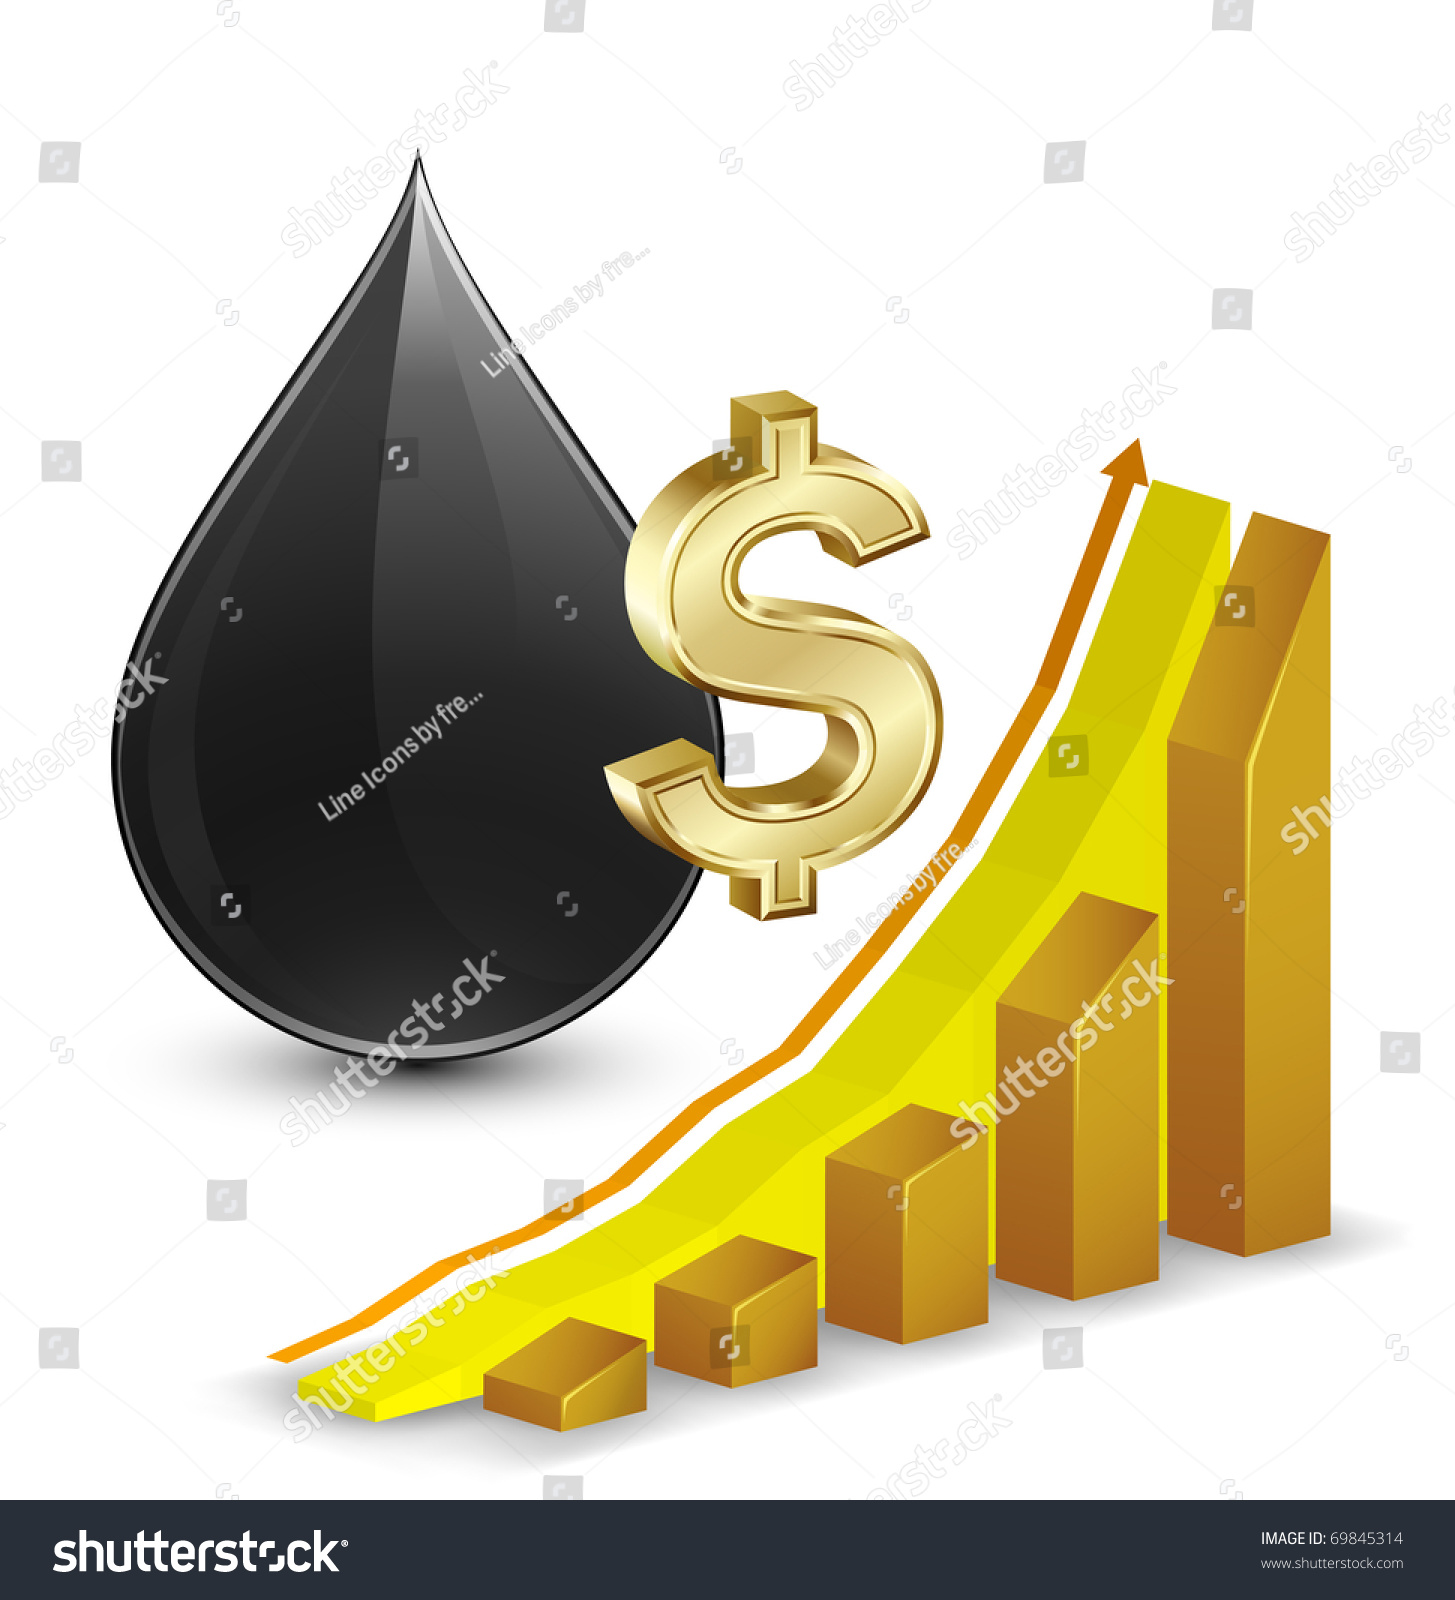 Crude oil price growth chart crude stock vector 69845314 crude oil price growth chart with crude oil and dollar sign on background biocorpaavc Gallery